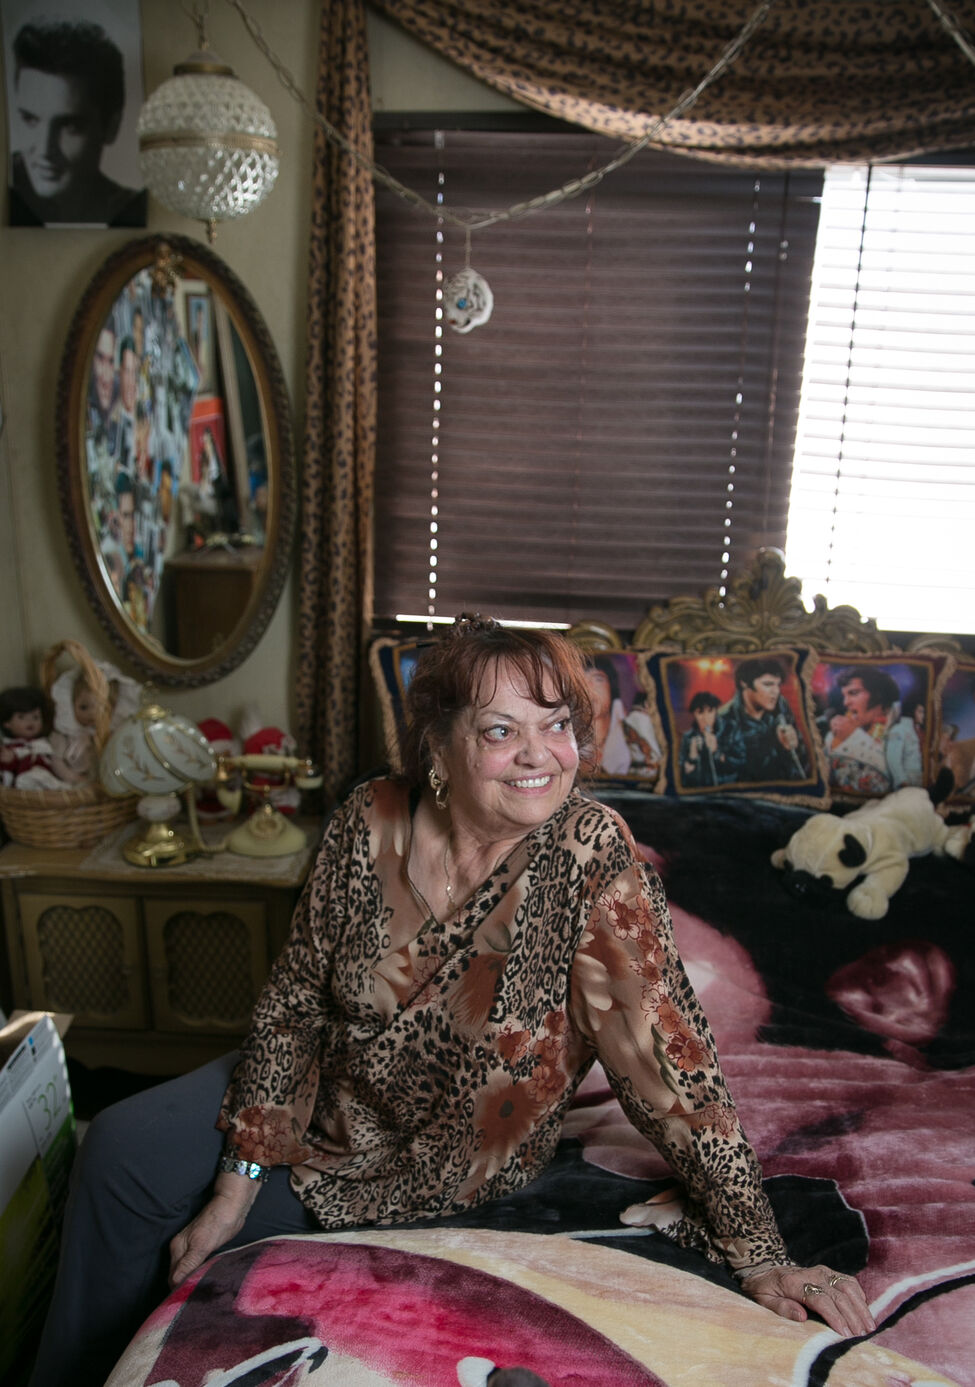 Gisela Wuensch, 80, is a former dancer who worked for Rick Irving. She now lives in Beausejour, and her trailer home is covered with photos of Elvis in every room.